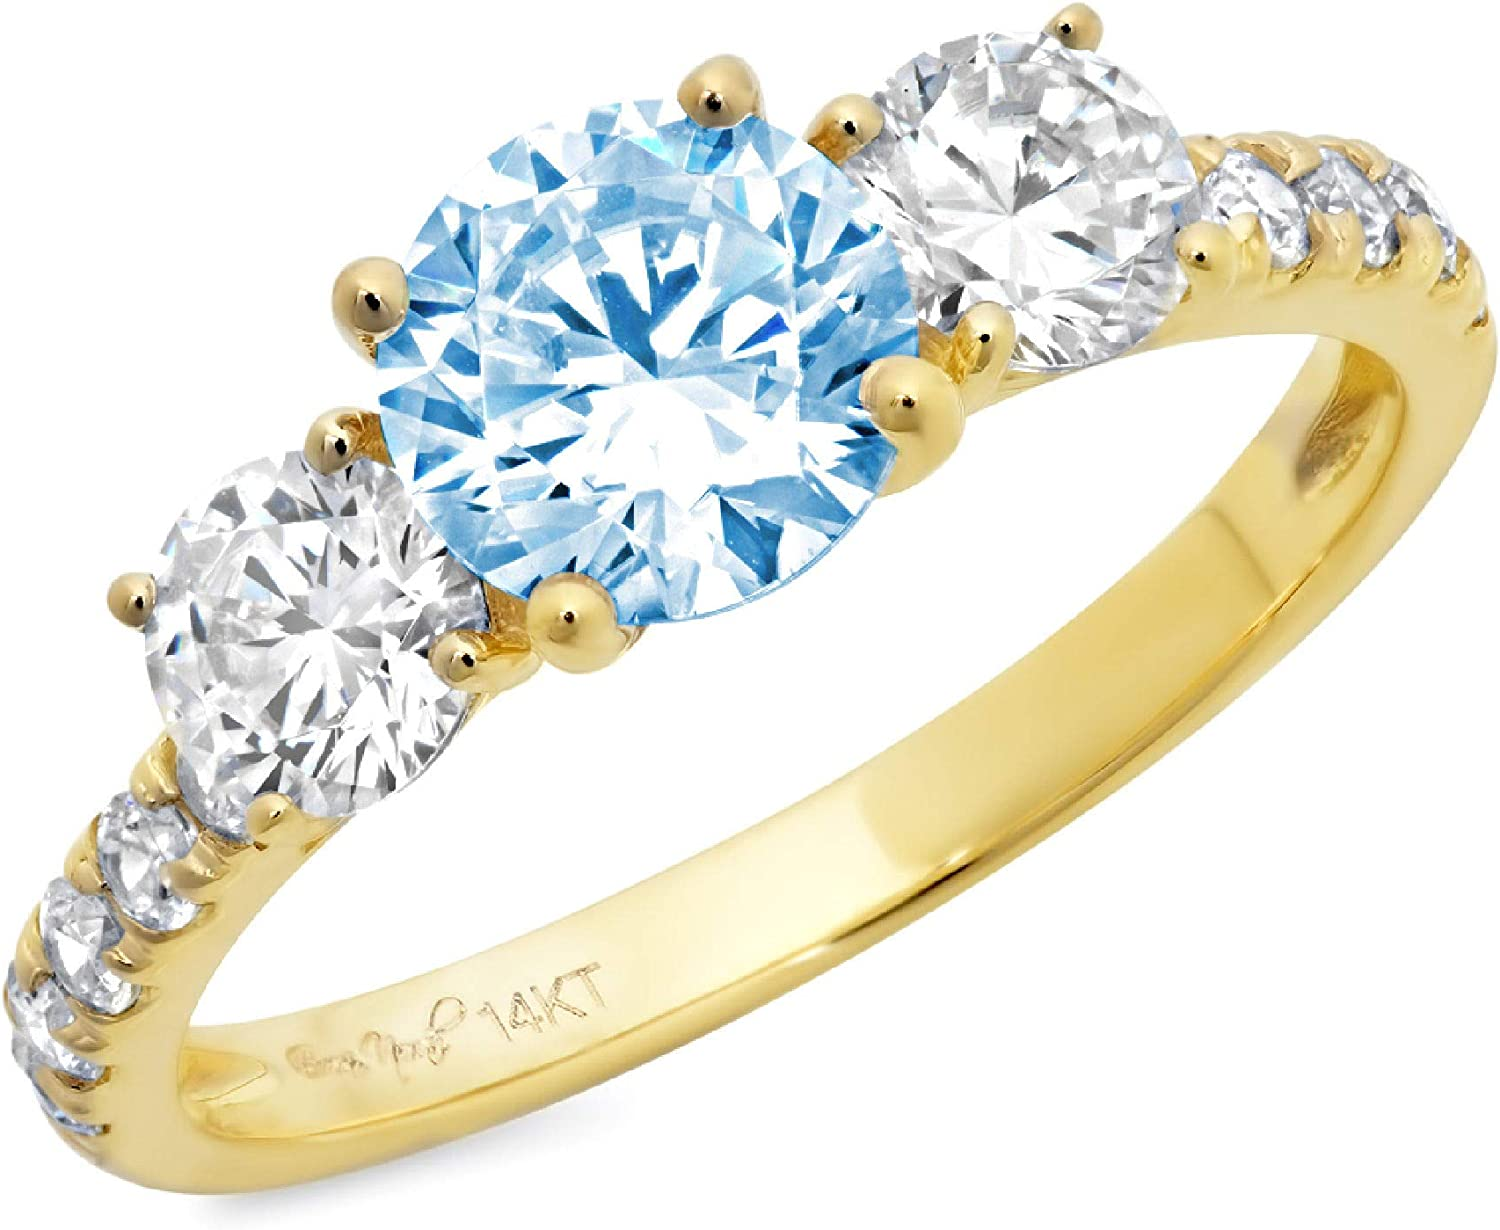 1.94ct Round Cut Solitaire 3 stone With Accent Natural Swiss Blue Topaz Gemstone Ideal VVS1 Engagement Promise Statement Anniversary Bridal Wedding ring 14k Yellow Gold